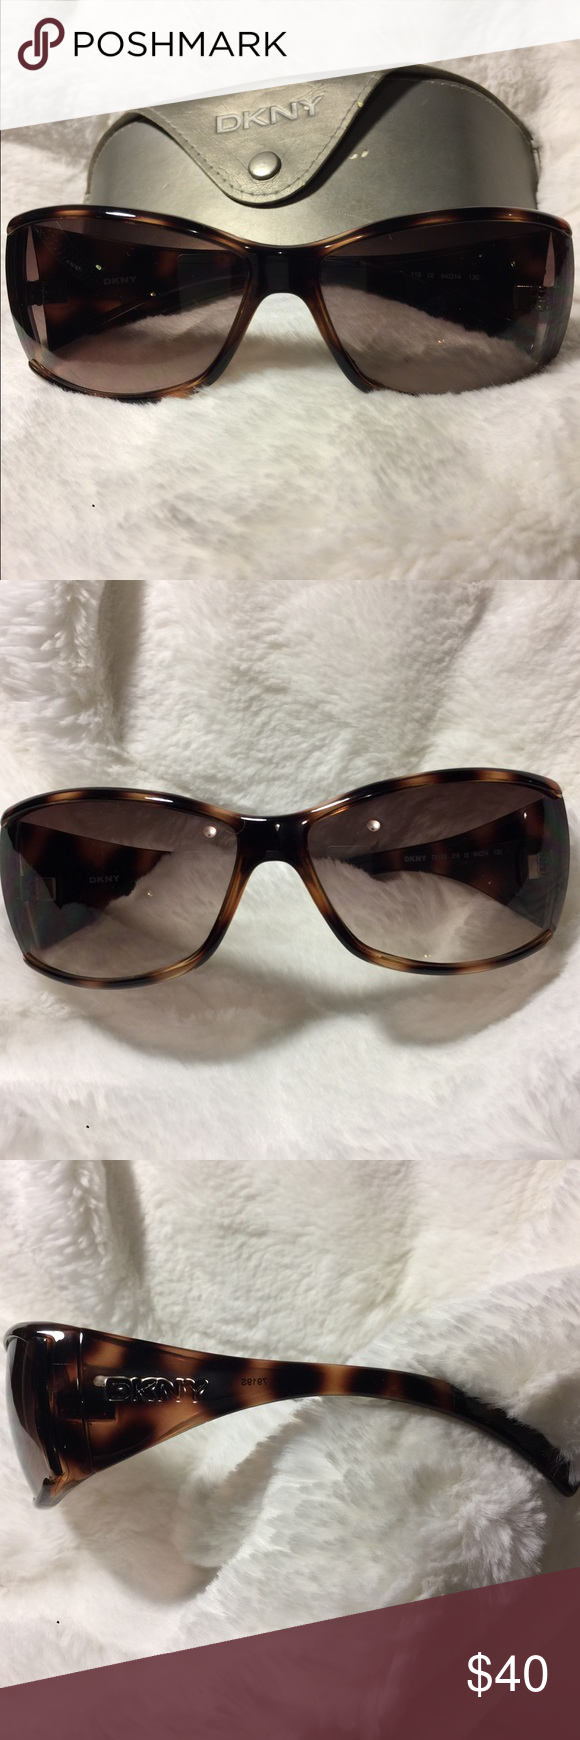 8caae4c2ef81 DKNY (Donna Karan) tortoise sunglasses. These are in great shape! No  scratches or divets